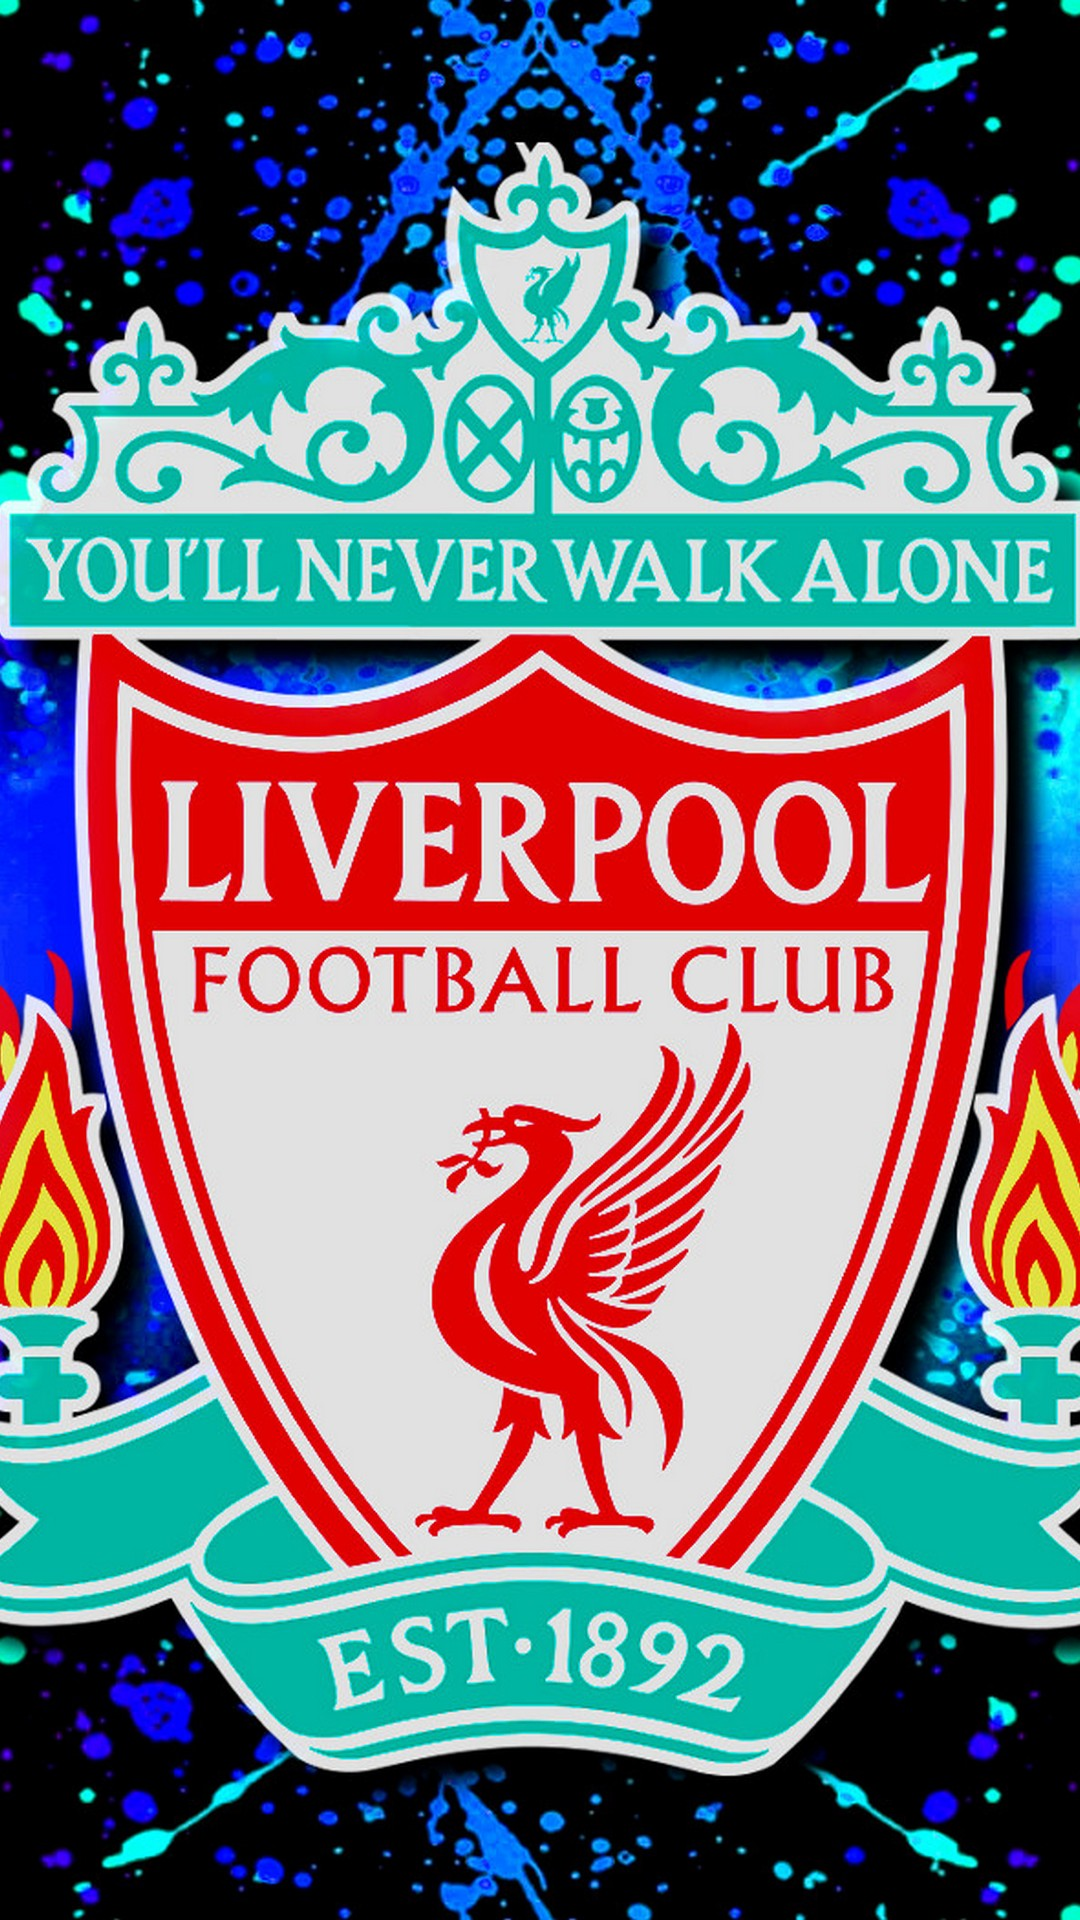 Wallpaper Android Liverpool With High Resolution Pixel Logo Dls 2020 Liverpool 1080x1920 Download Hd Wallpaper Wallpapertip